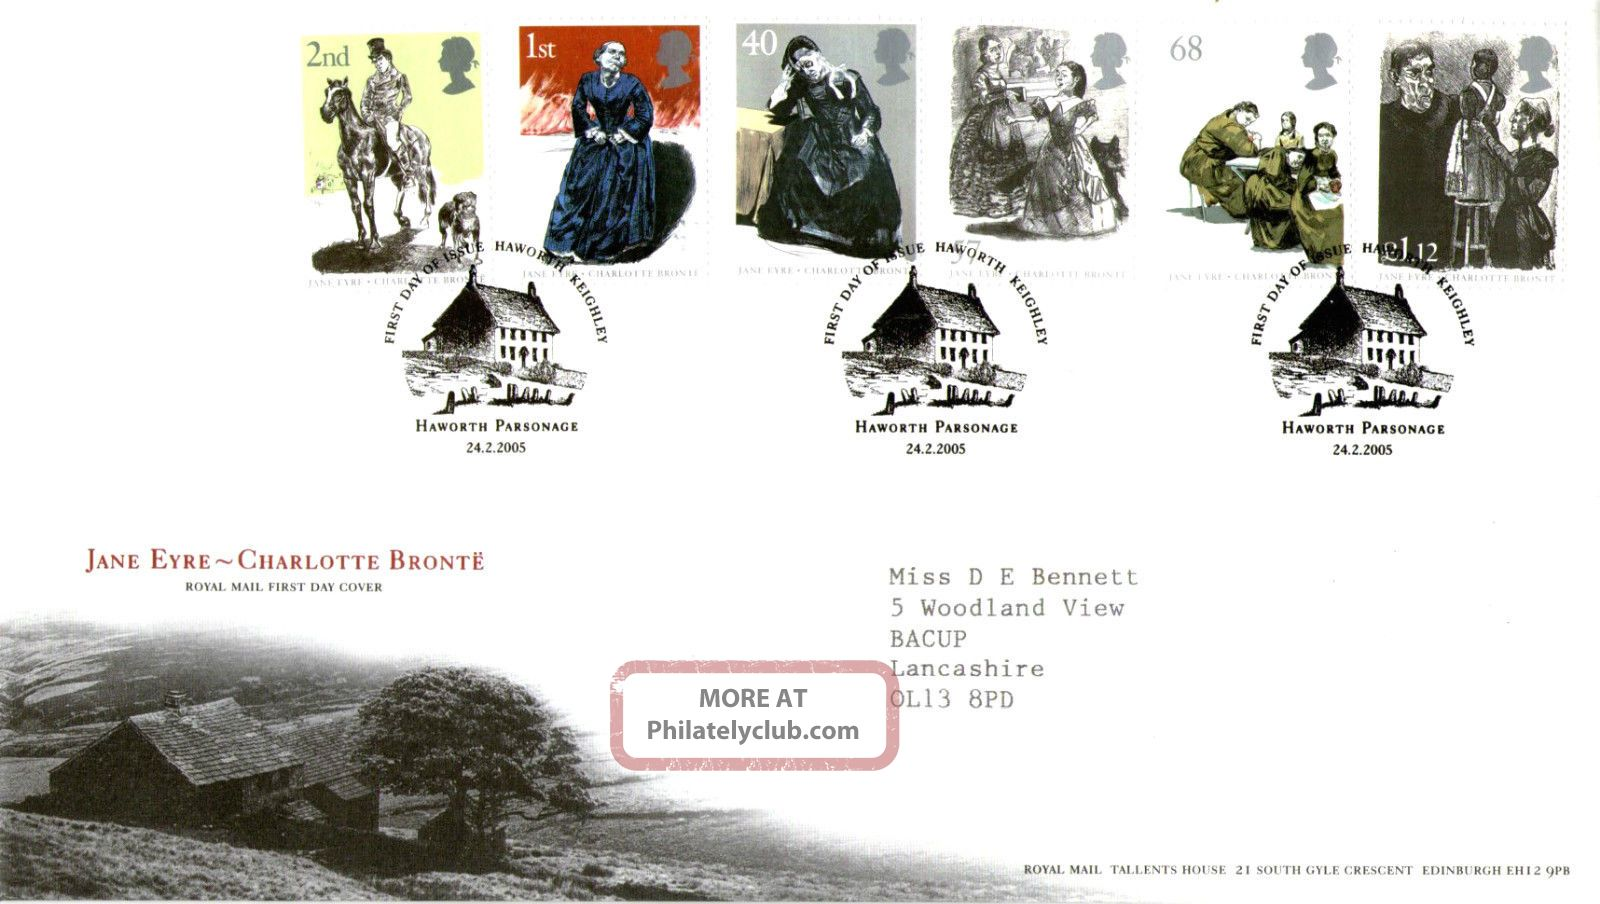 24 February 2005 Jane Eyre Royal Mail First Day Cover Haworth Parsonage Shs Topical Stamps photo